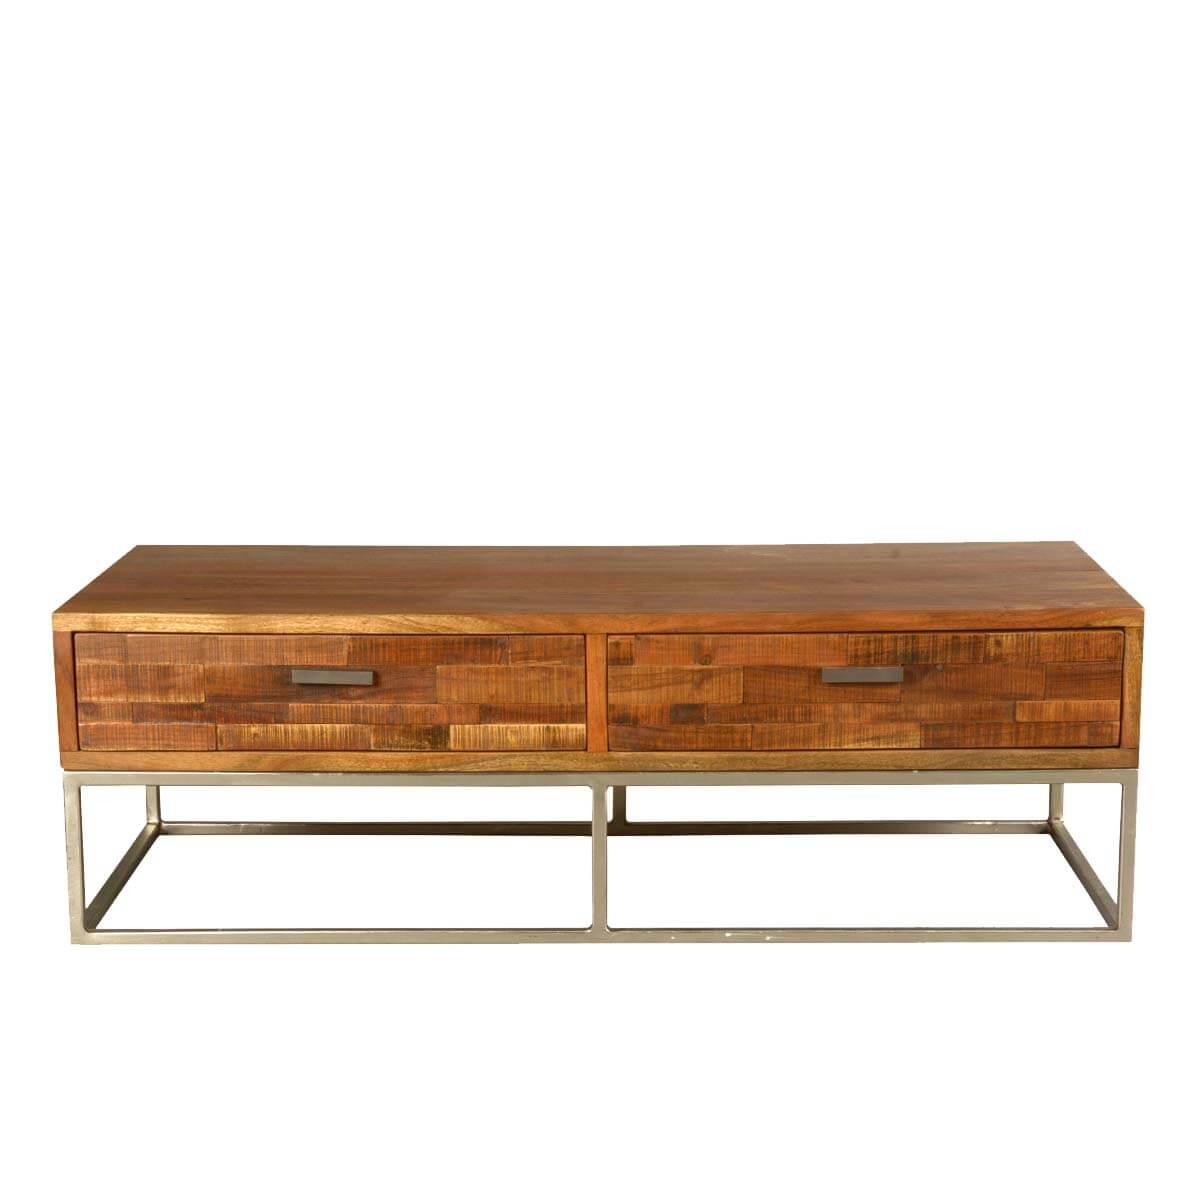 Modern Rustic Solid Wood Iron 4 Drawer Industrial Coffee Table